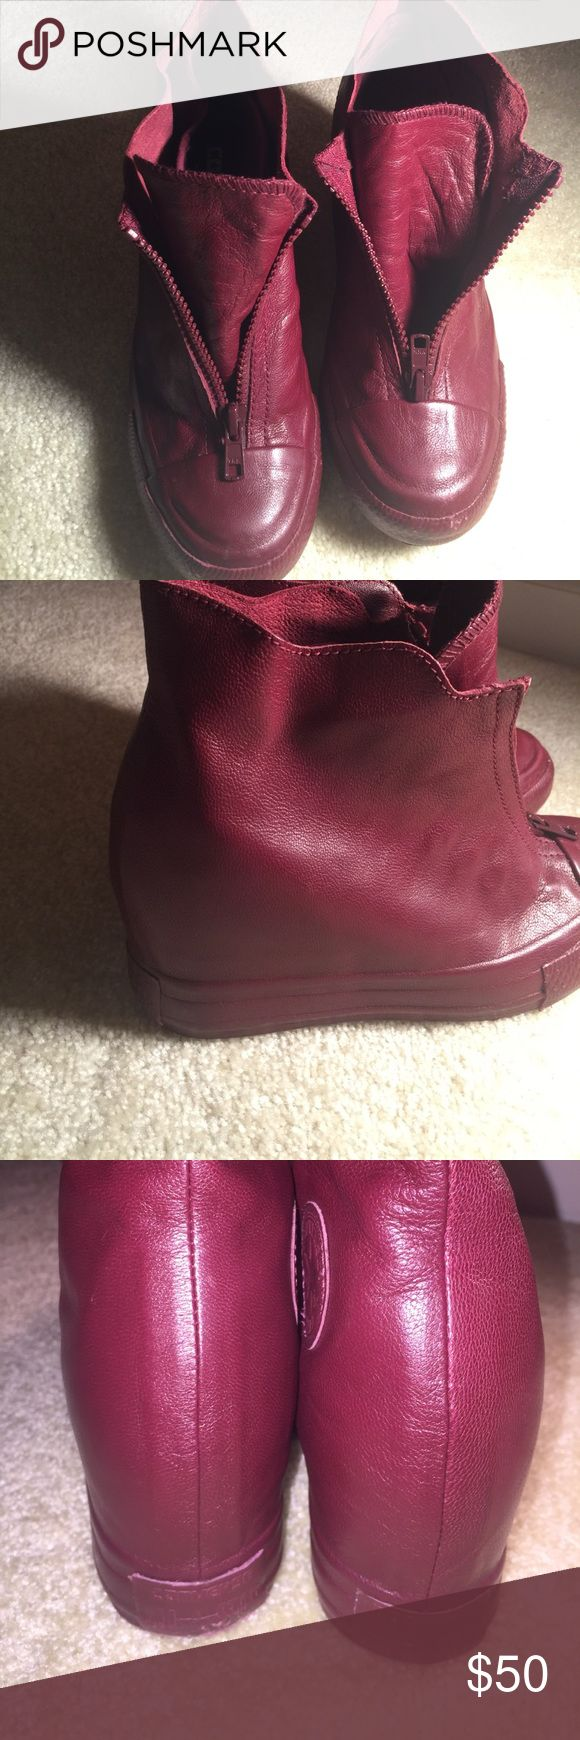 Wedged Leather Converse Burgundy leather wedged high top converse with zip up front Converse Shoes Athletic Shoes